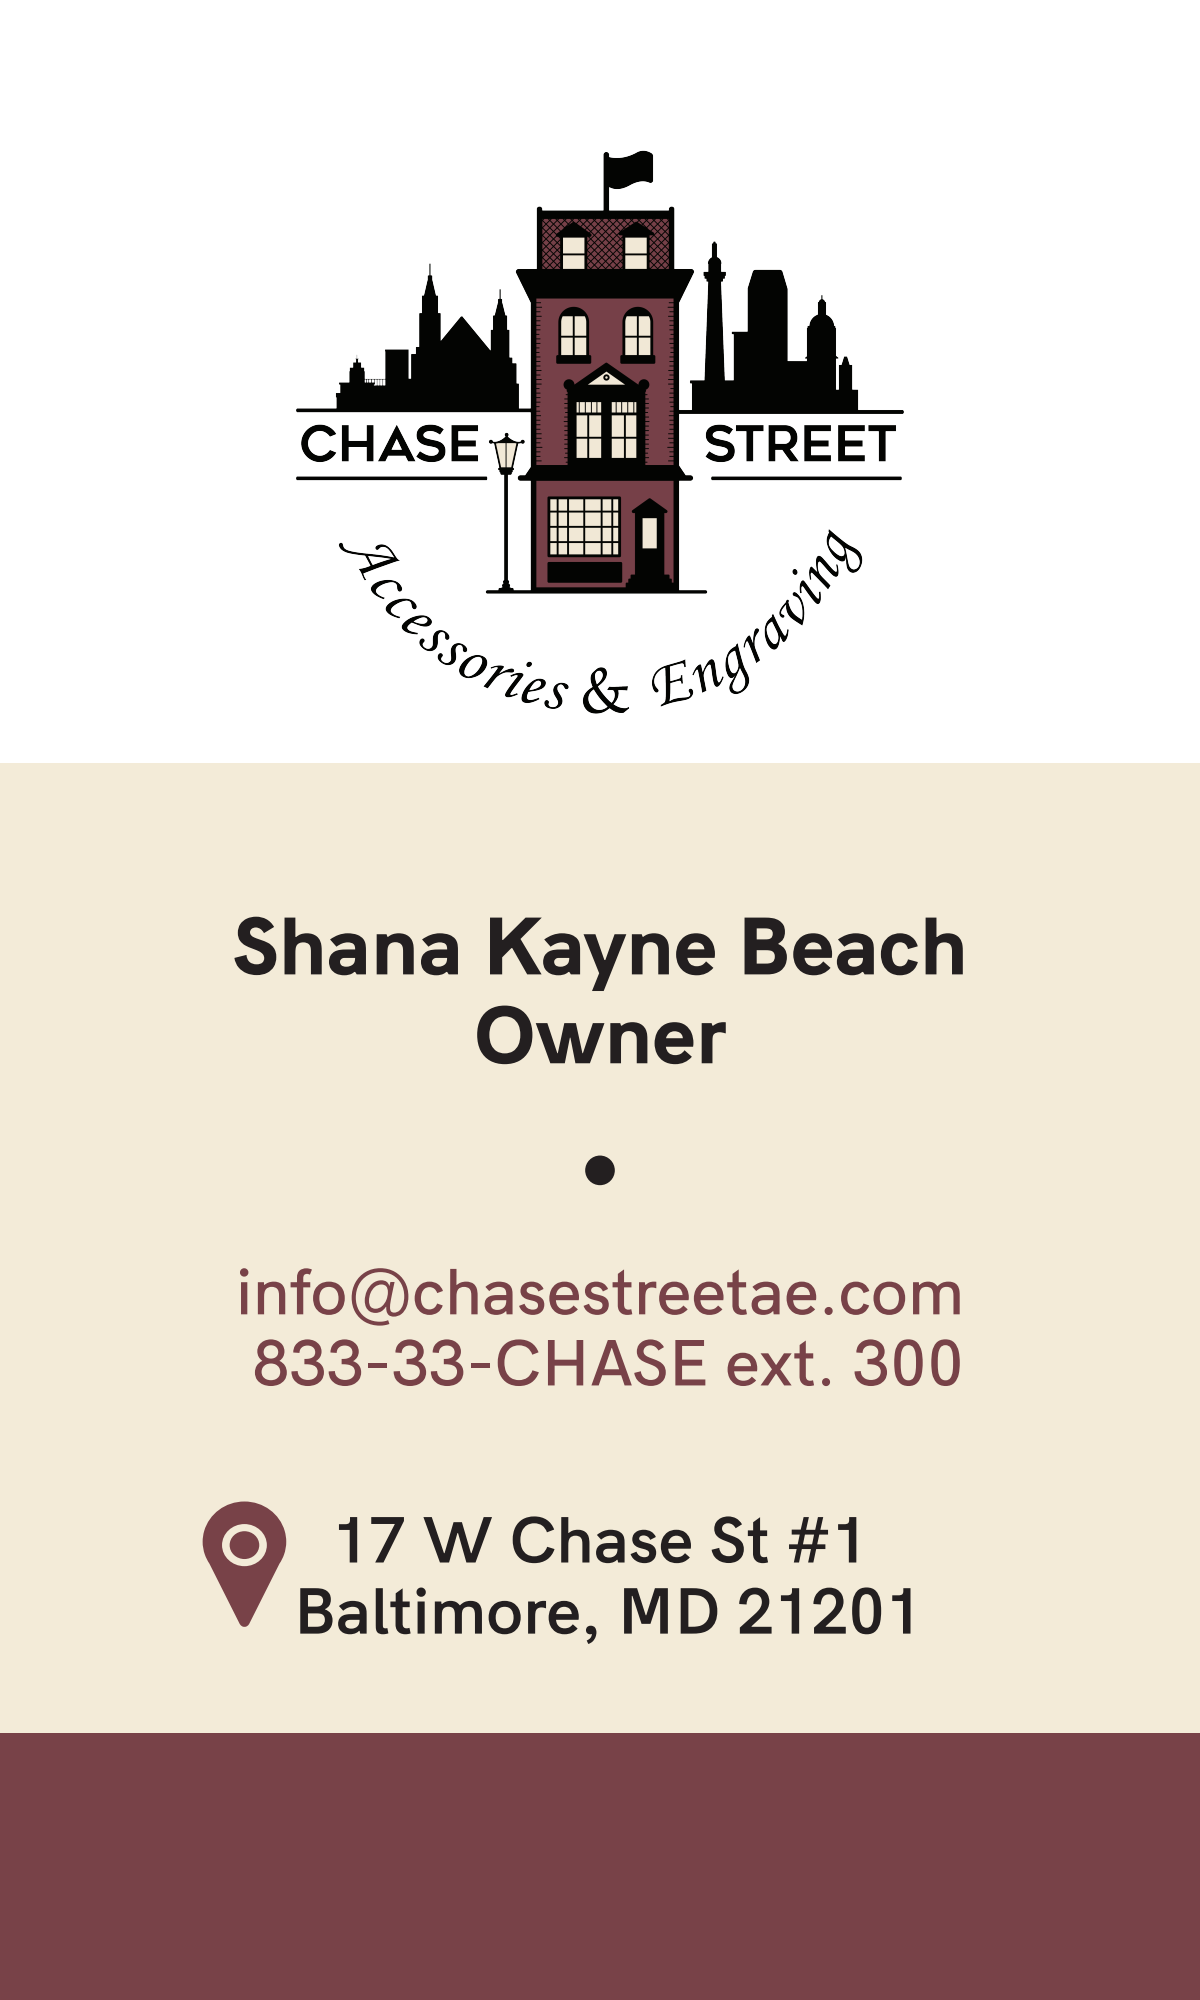 Chase Street business card